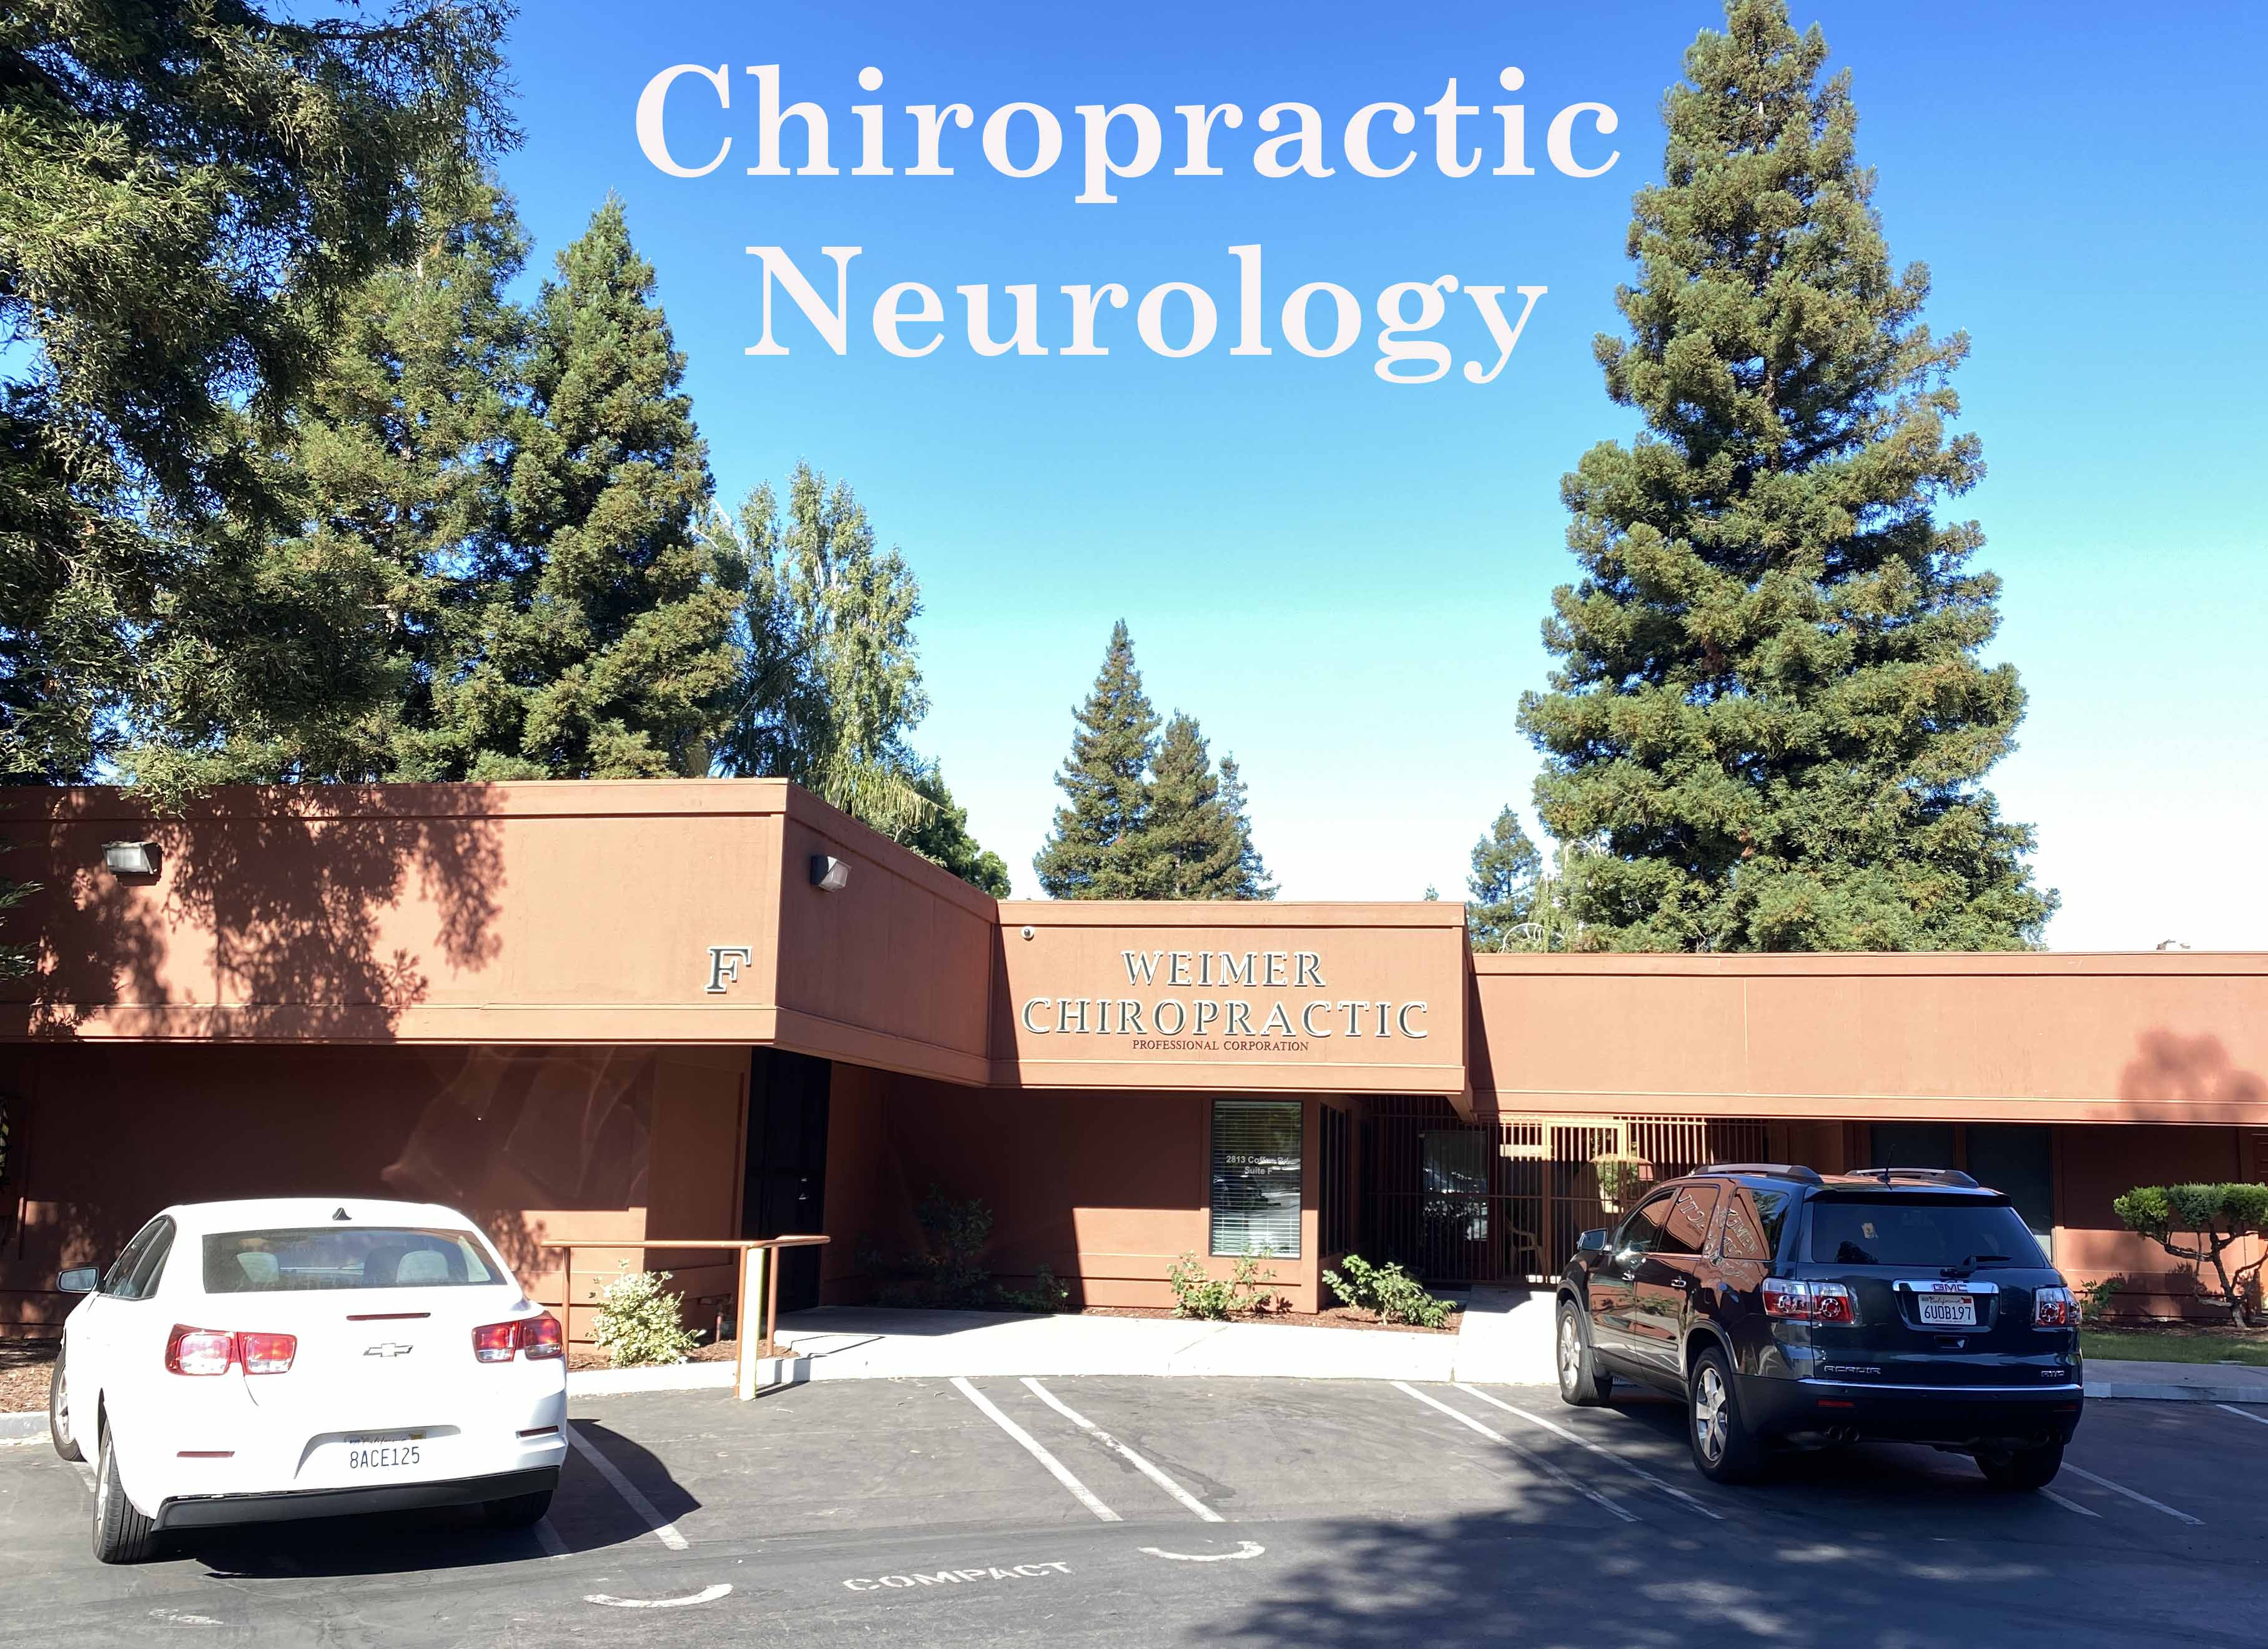 Chiropractic Neurology at Weimer Chiropractic